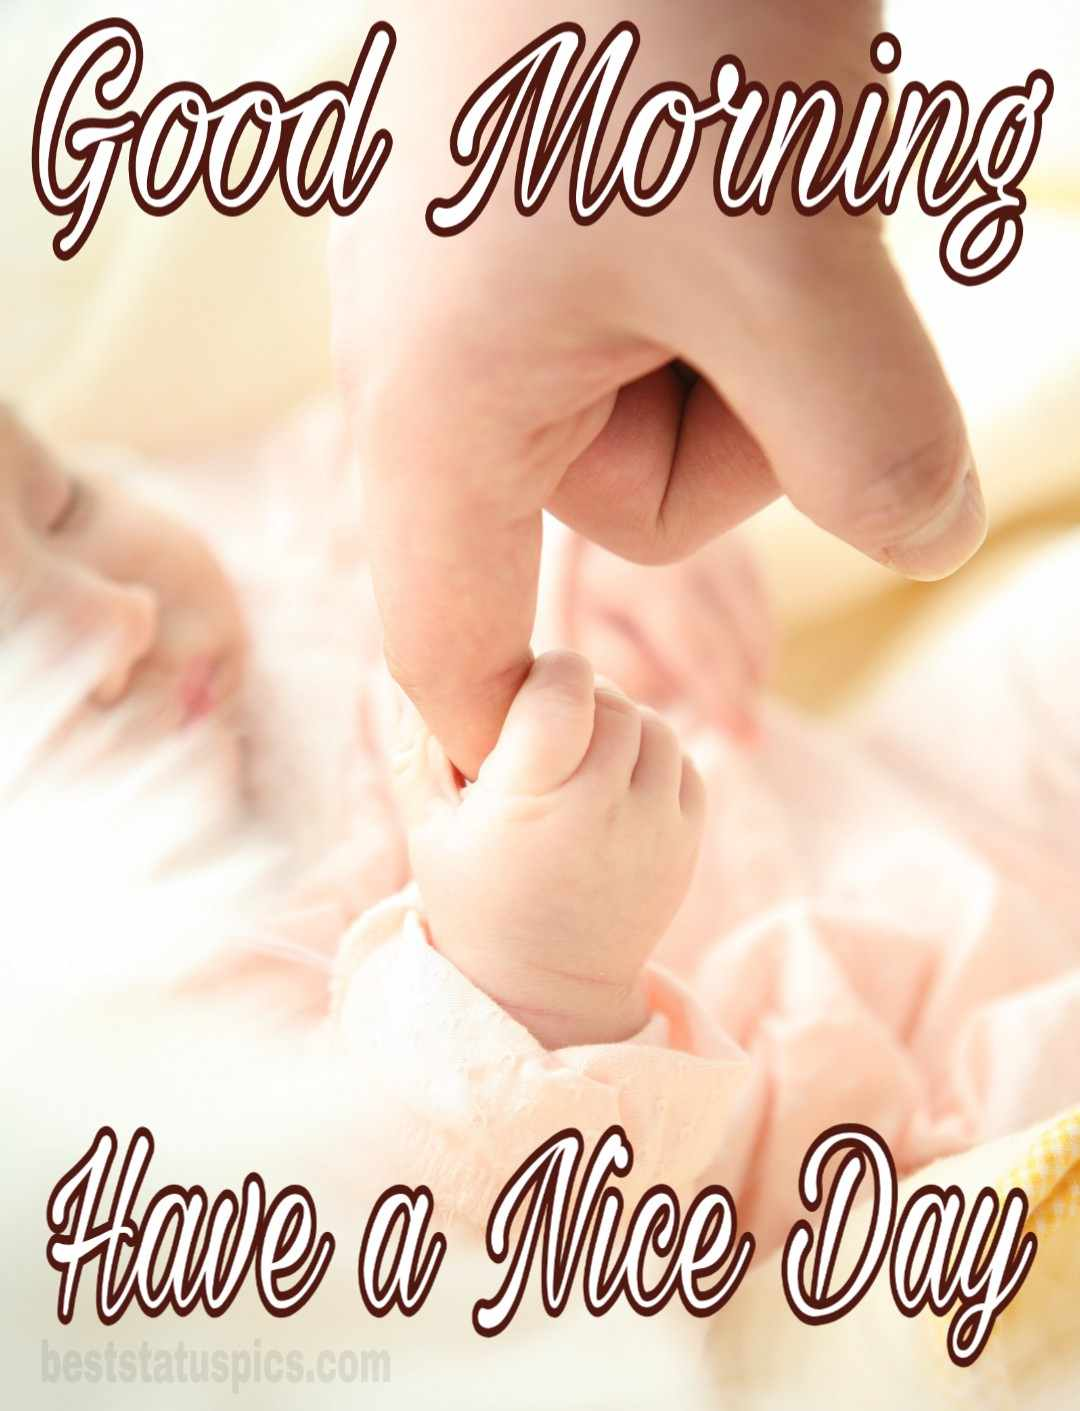 Cute baby good morning wishes image